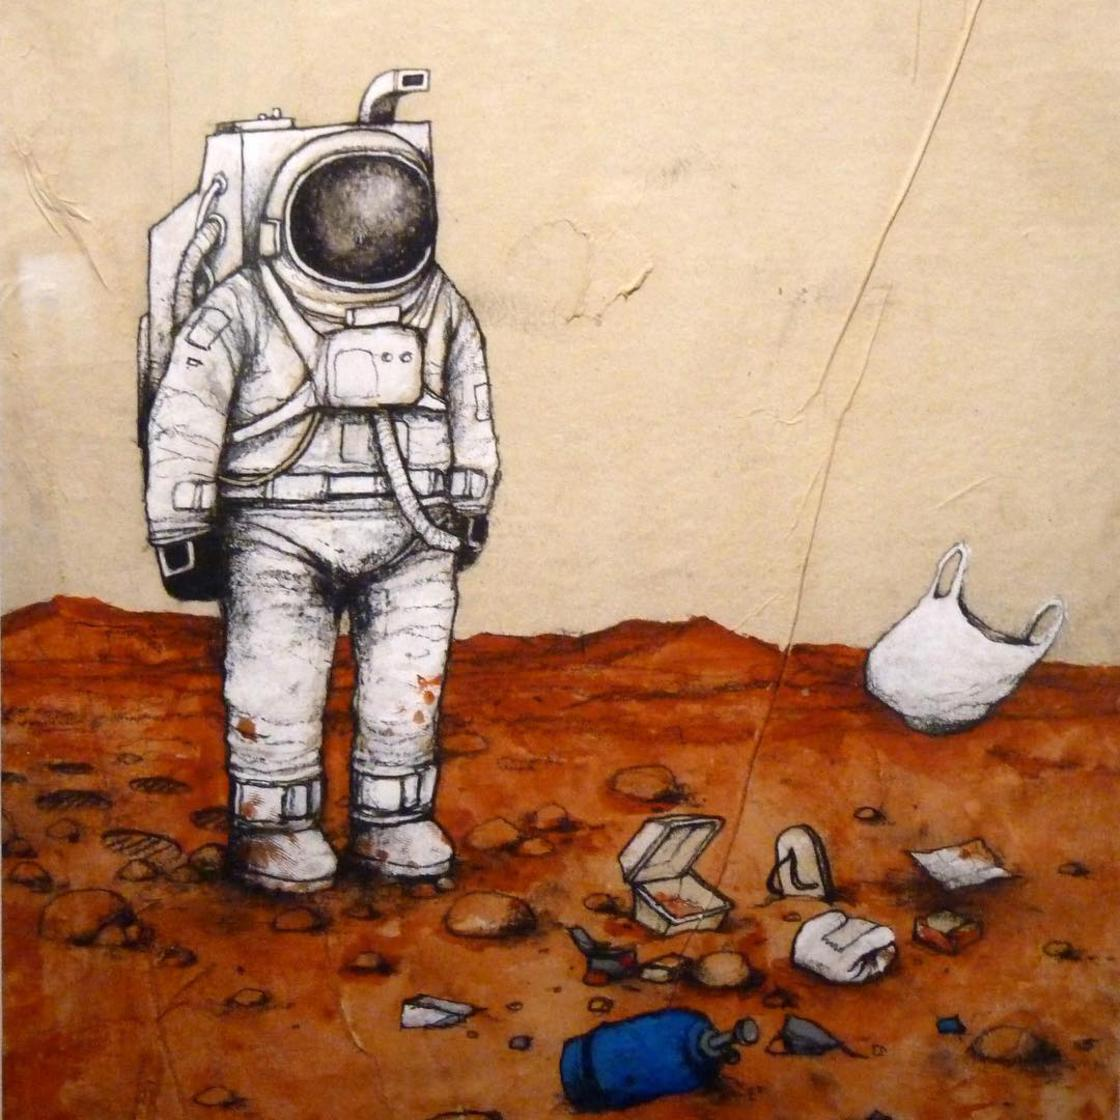 Sarcasm and Nostalgia – Dive into the tortured world of DRAN